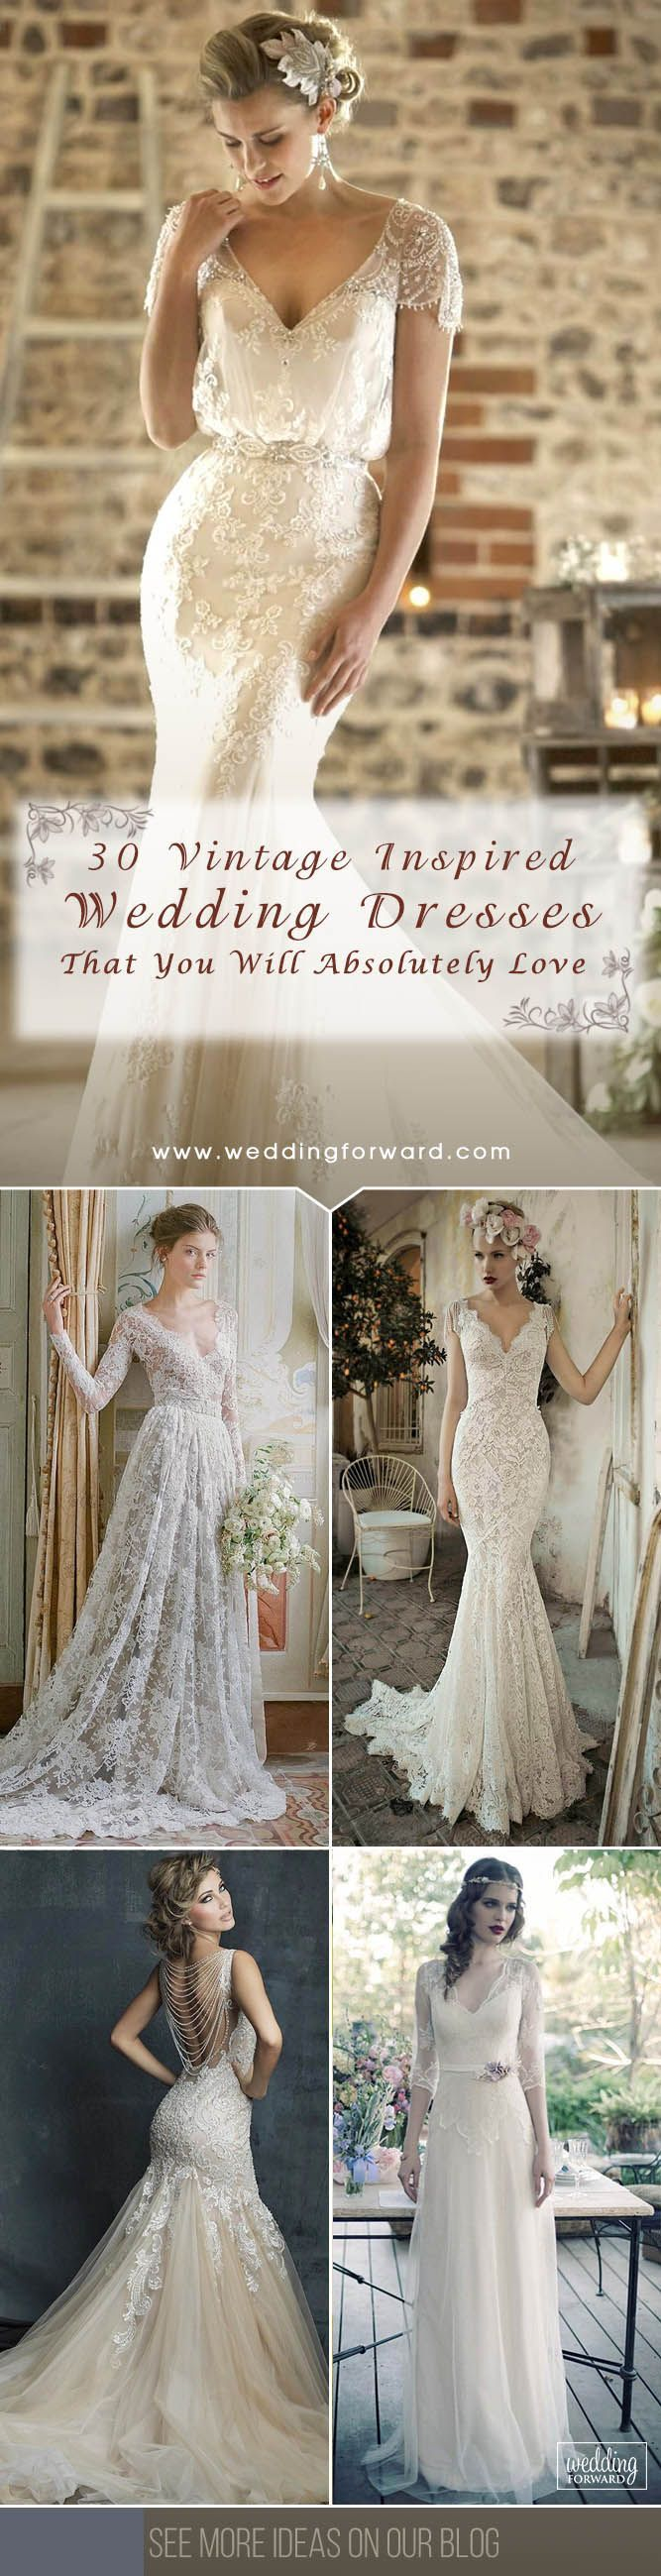 30 Vintage Inspired Wedding Dresses ❤️ Most bohemian vintage wedding dresses are created from luxury, silk fabrics and finished with stunning beadwork. See more: http://www.weddingforward.com/vintage-inspired-wedding-dresses/ #vintage #wedding #dresses